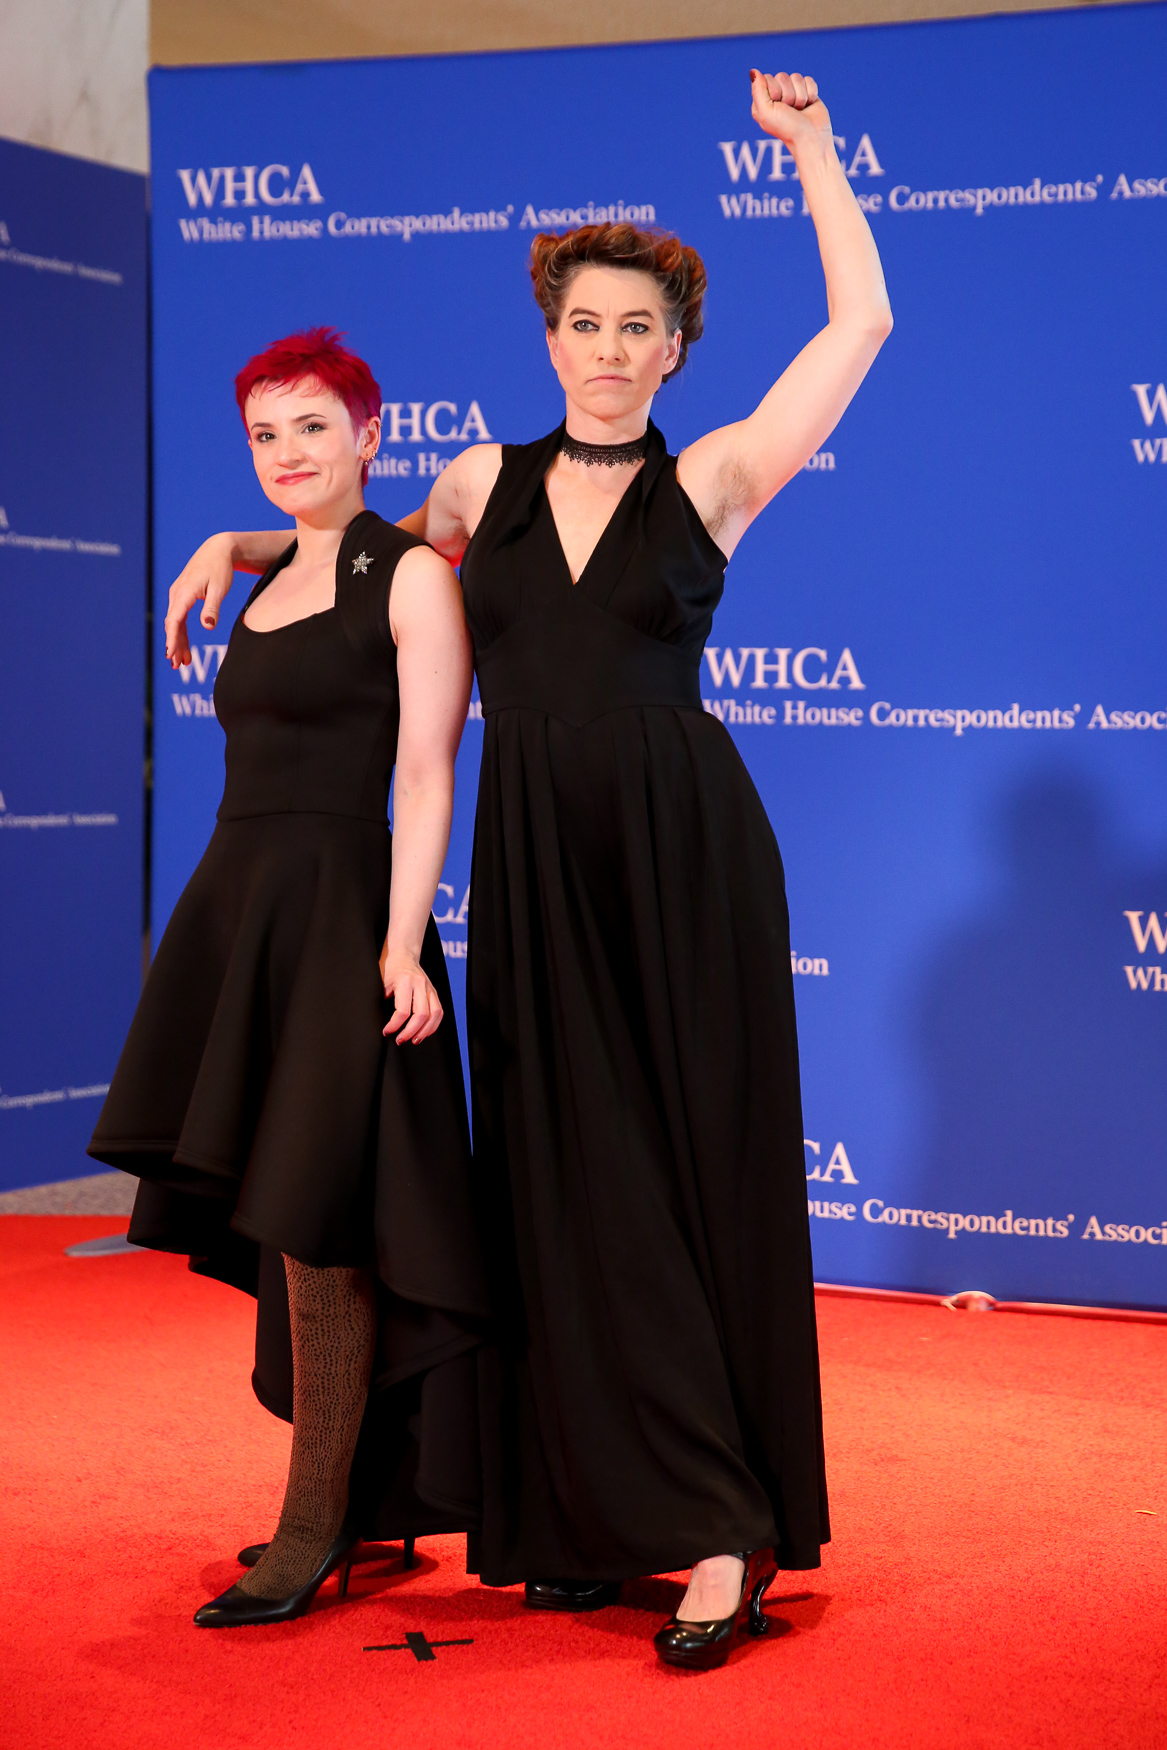 Singer Amanda Palmer and{ } screenwriter Laurie Penny. (Amanda Andrade-Rhoades/DC Refined)